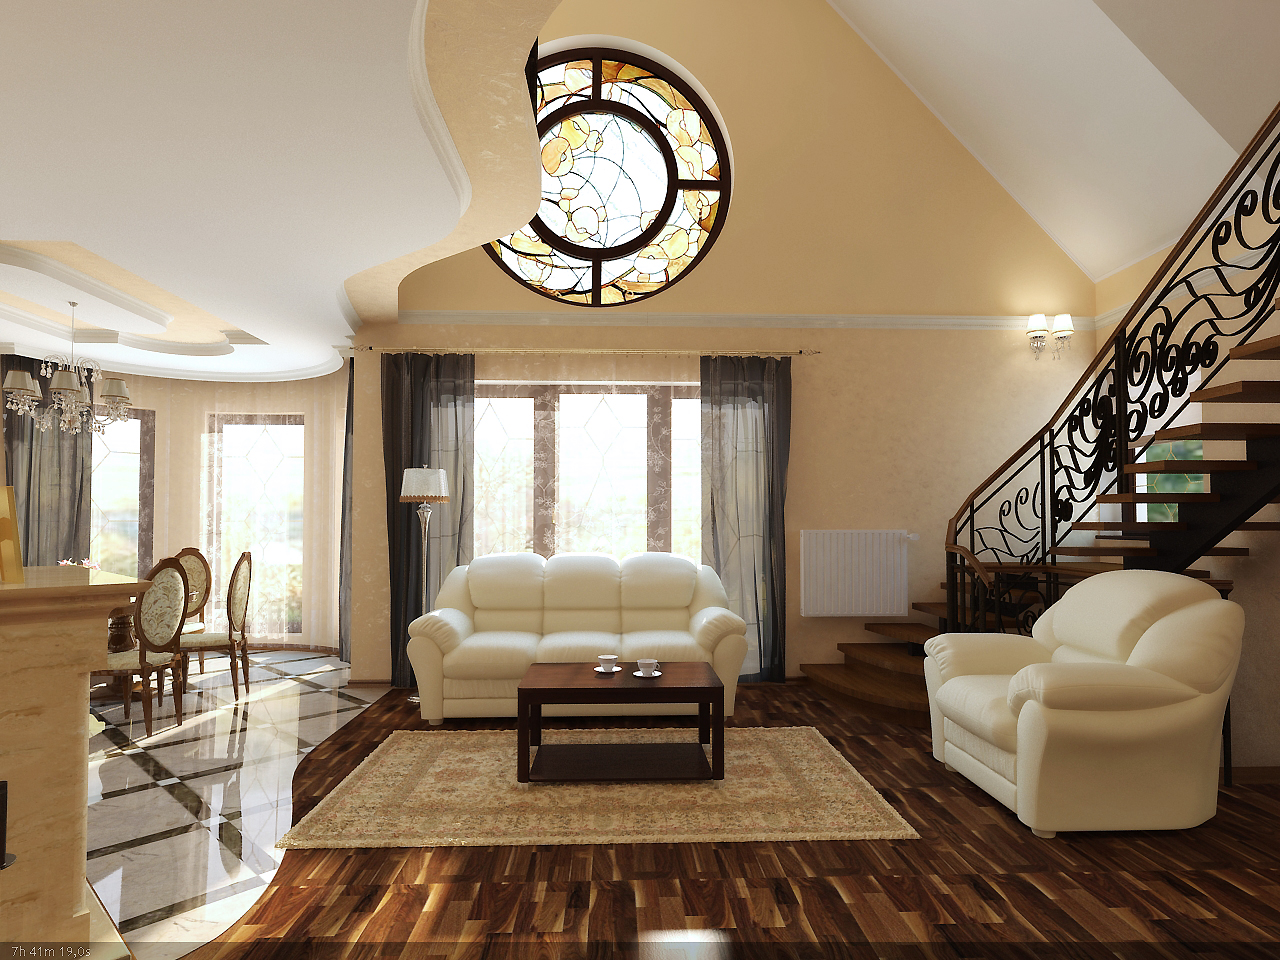 Interior House Designs classic interior design